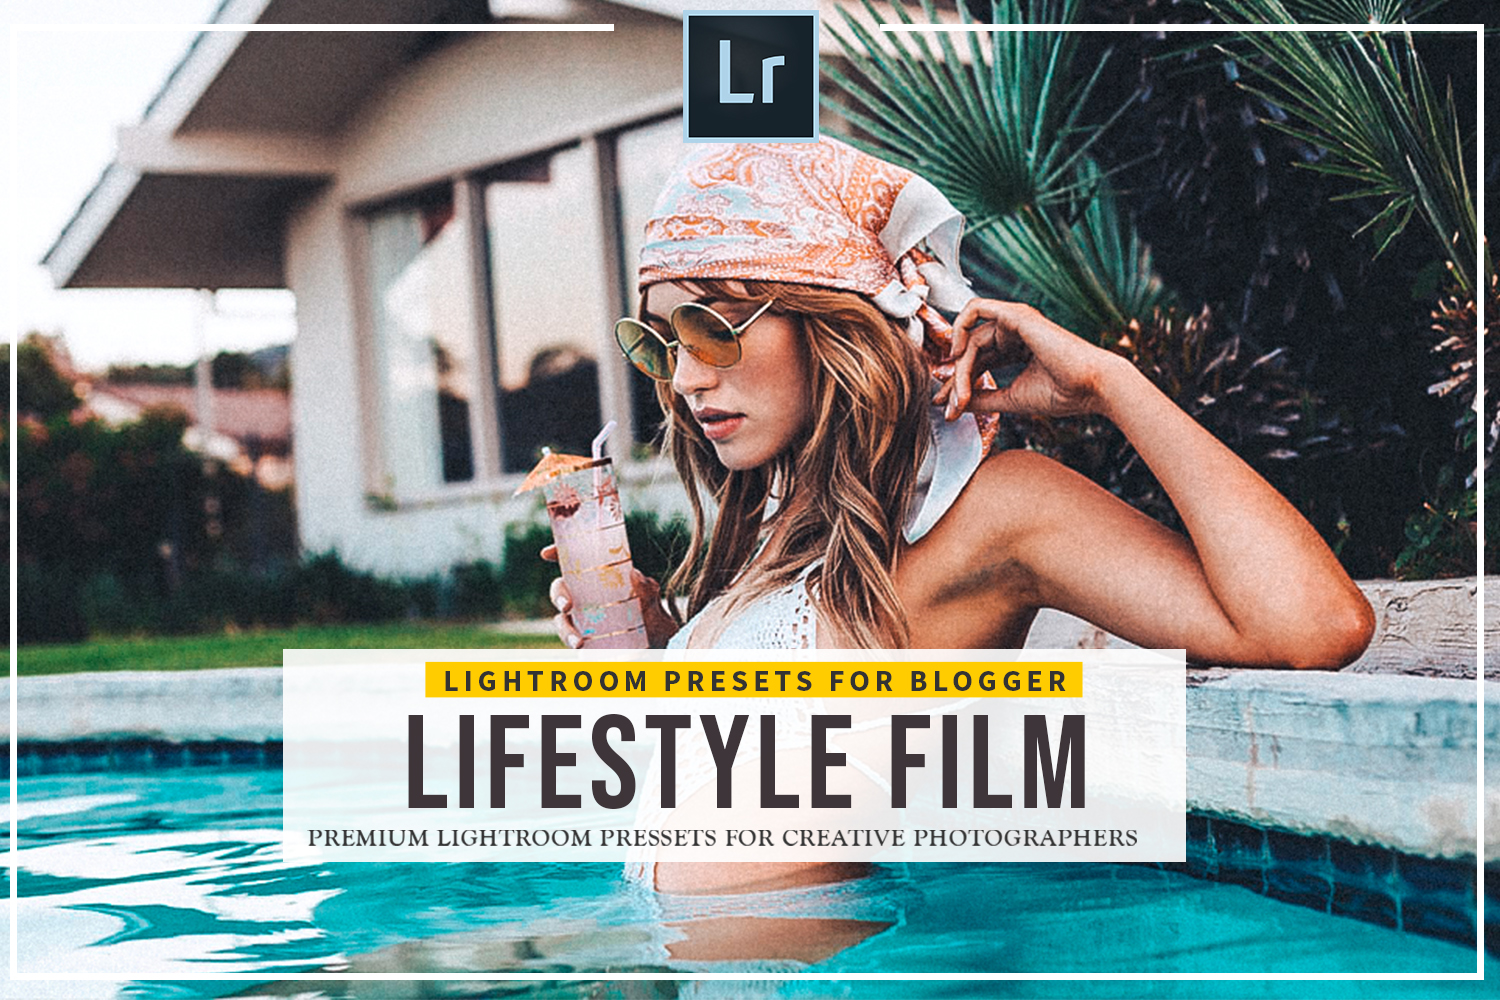 Lifestyle Film Lightroom Presets example image 1